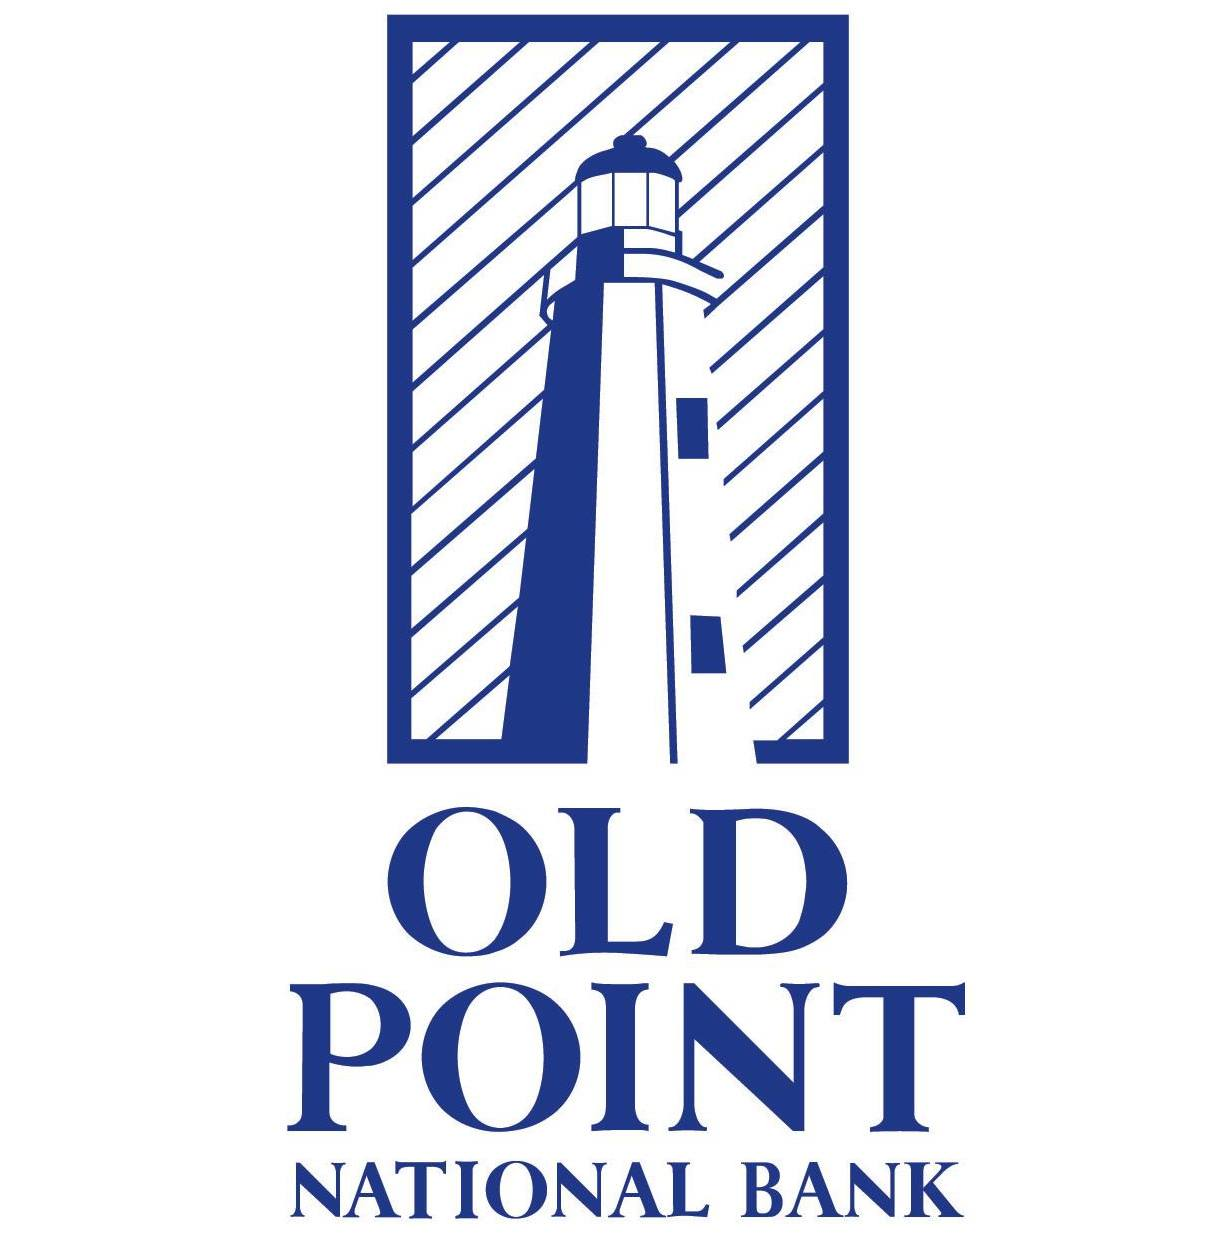 old-point-bank-lighthouse-logo_o.jpg